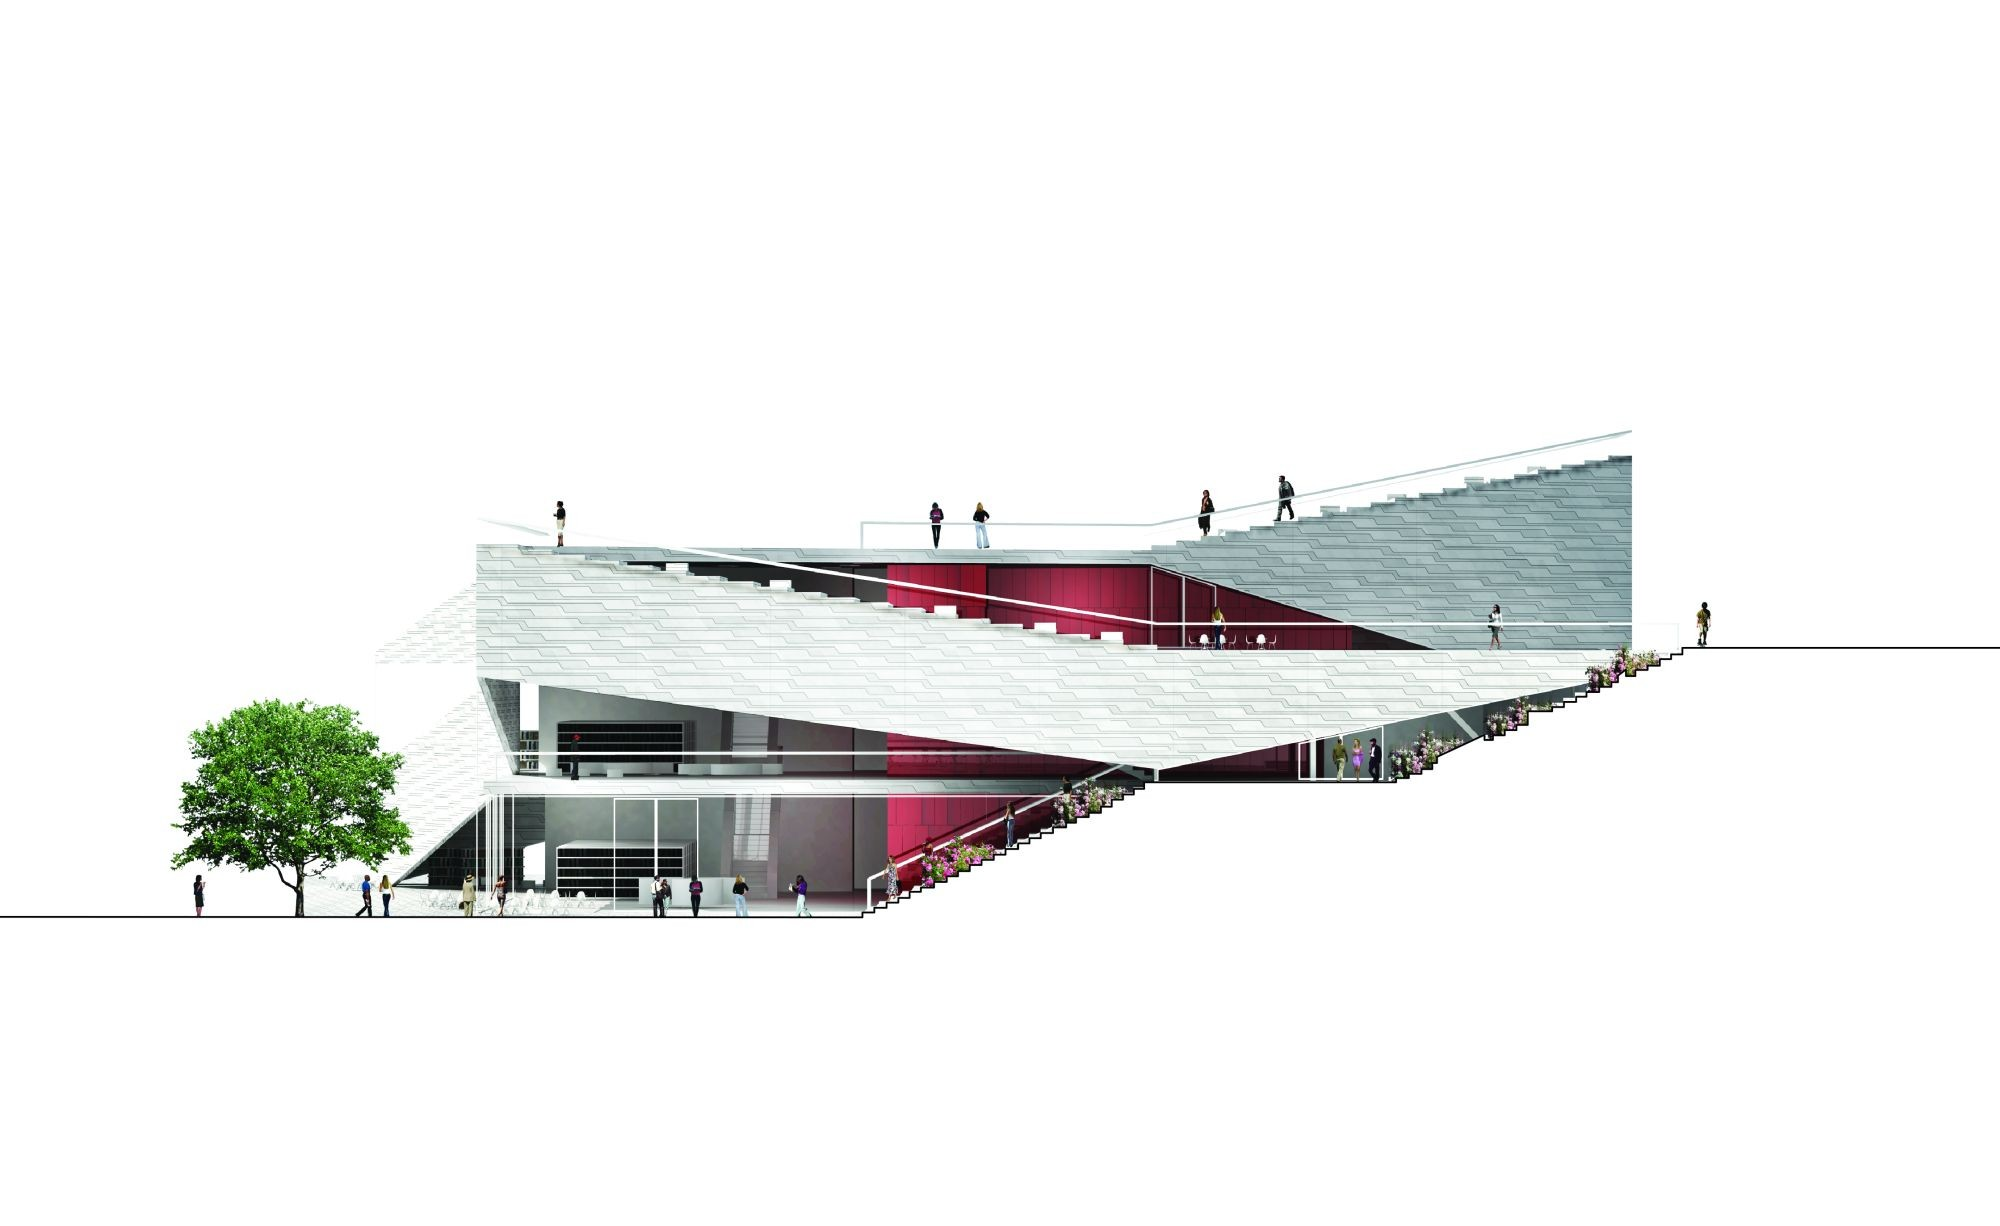 Ping Complex Plan Elevation Section : Gallery of plassen cultural center xn architects